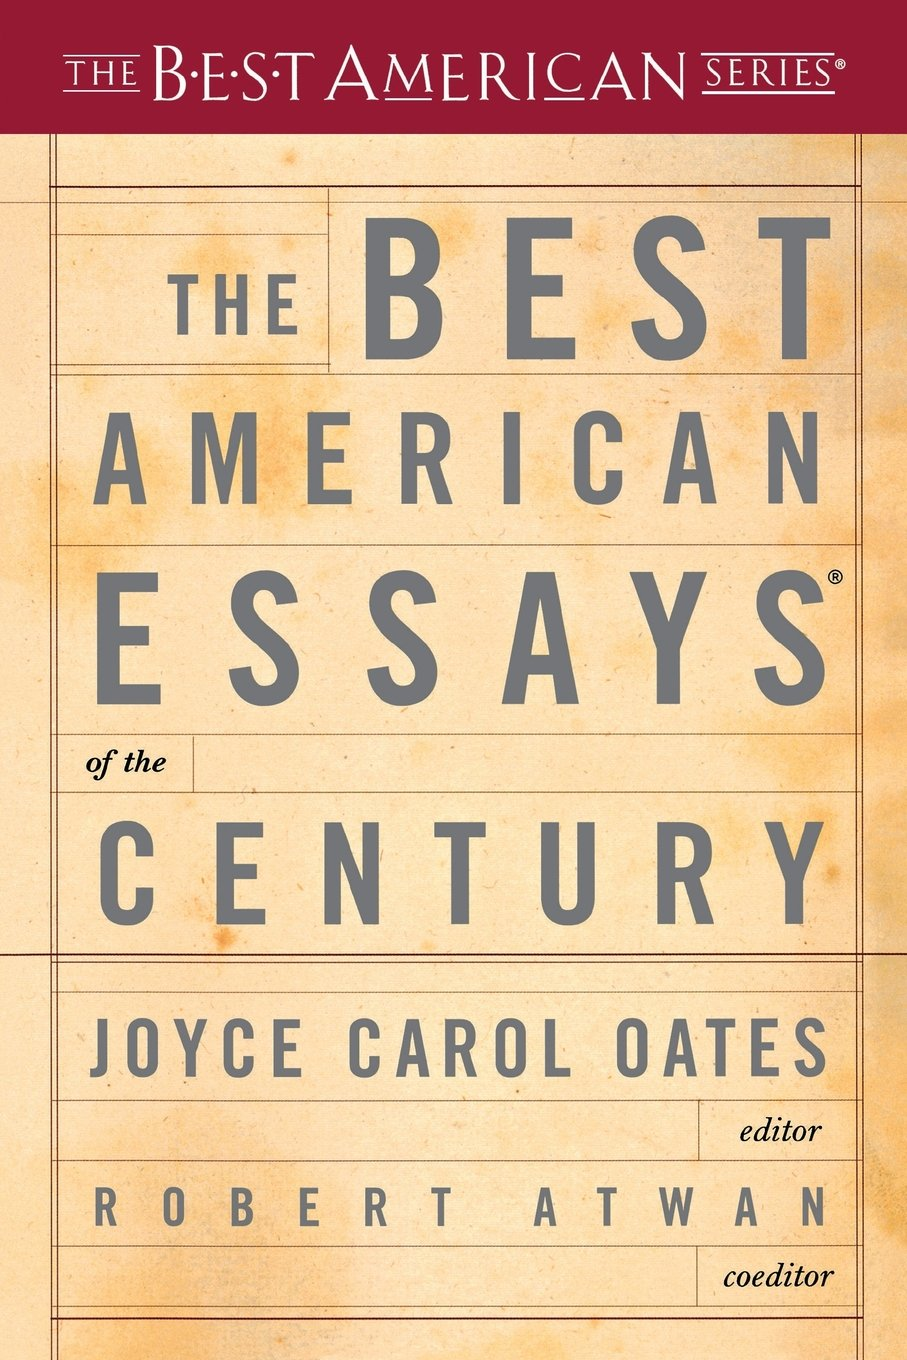 002 The Best American Essays Essay Example Wonderful 2013 Pdf Download Of Century Sparknotes 2017 Full